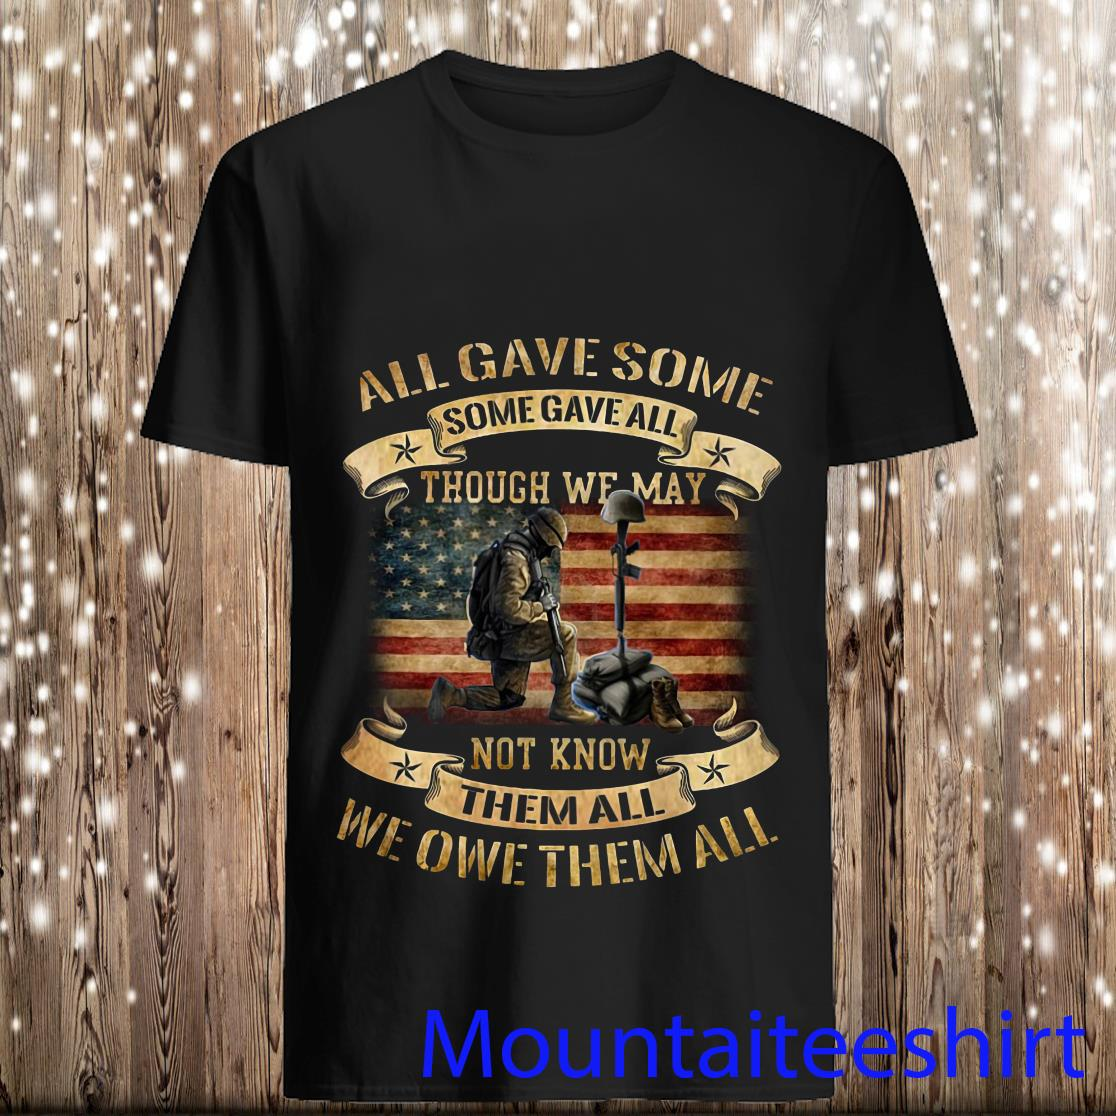 All Gave Some Some Gave All Though We May Not Know Them All We Owe Them All Shirt